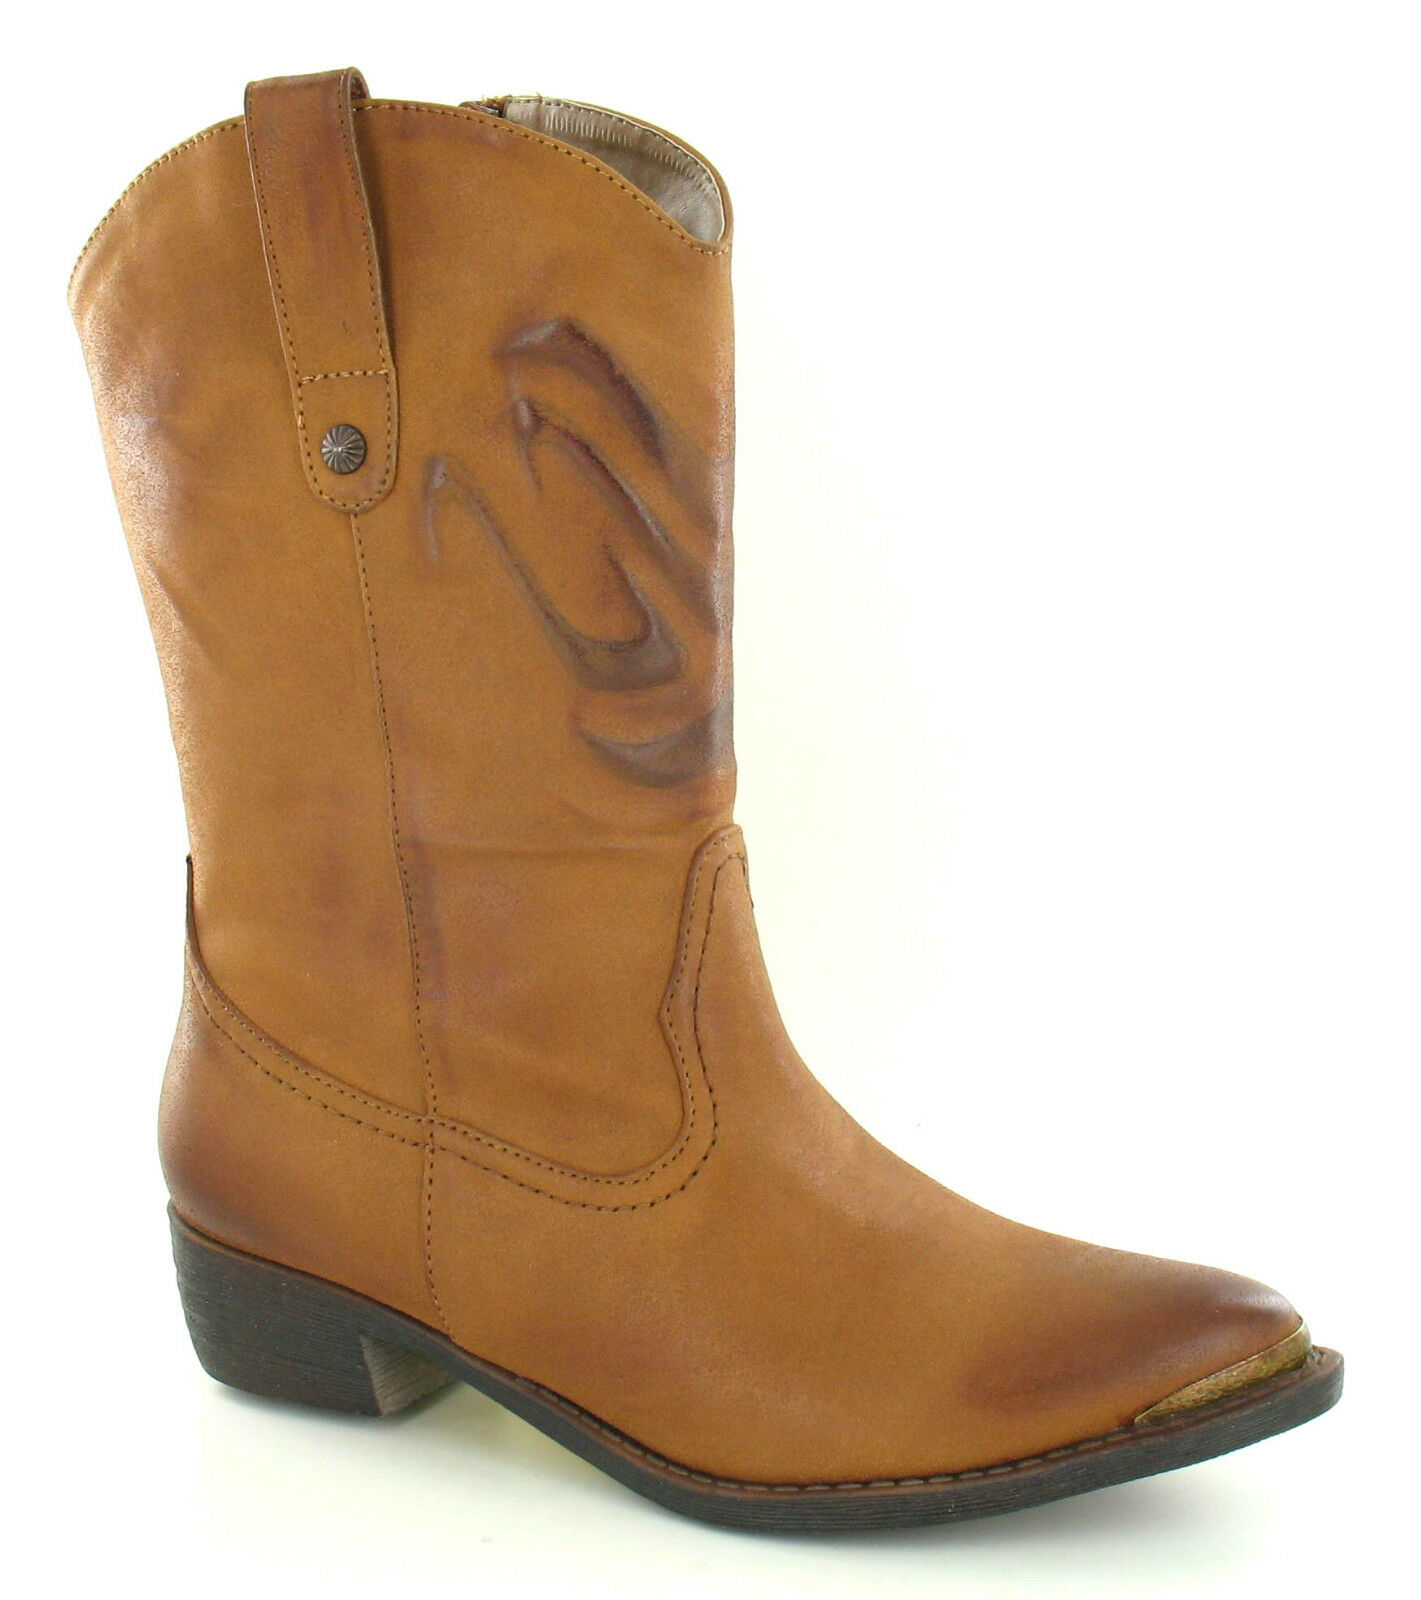 *SALE* Spot On F50170 Ladies Tan Cowboy Style Casual Boots